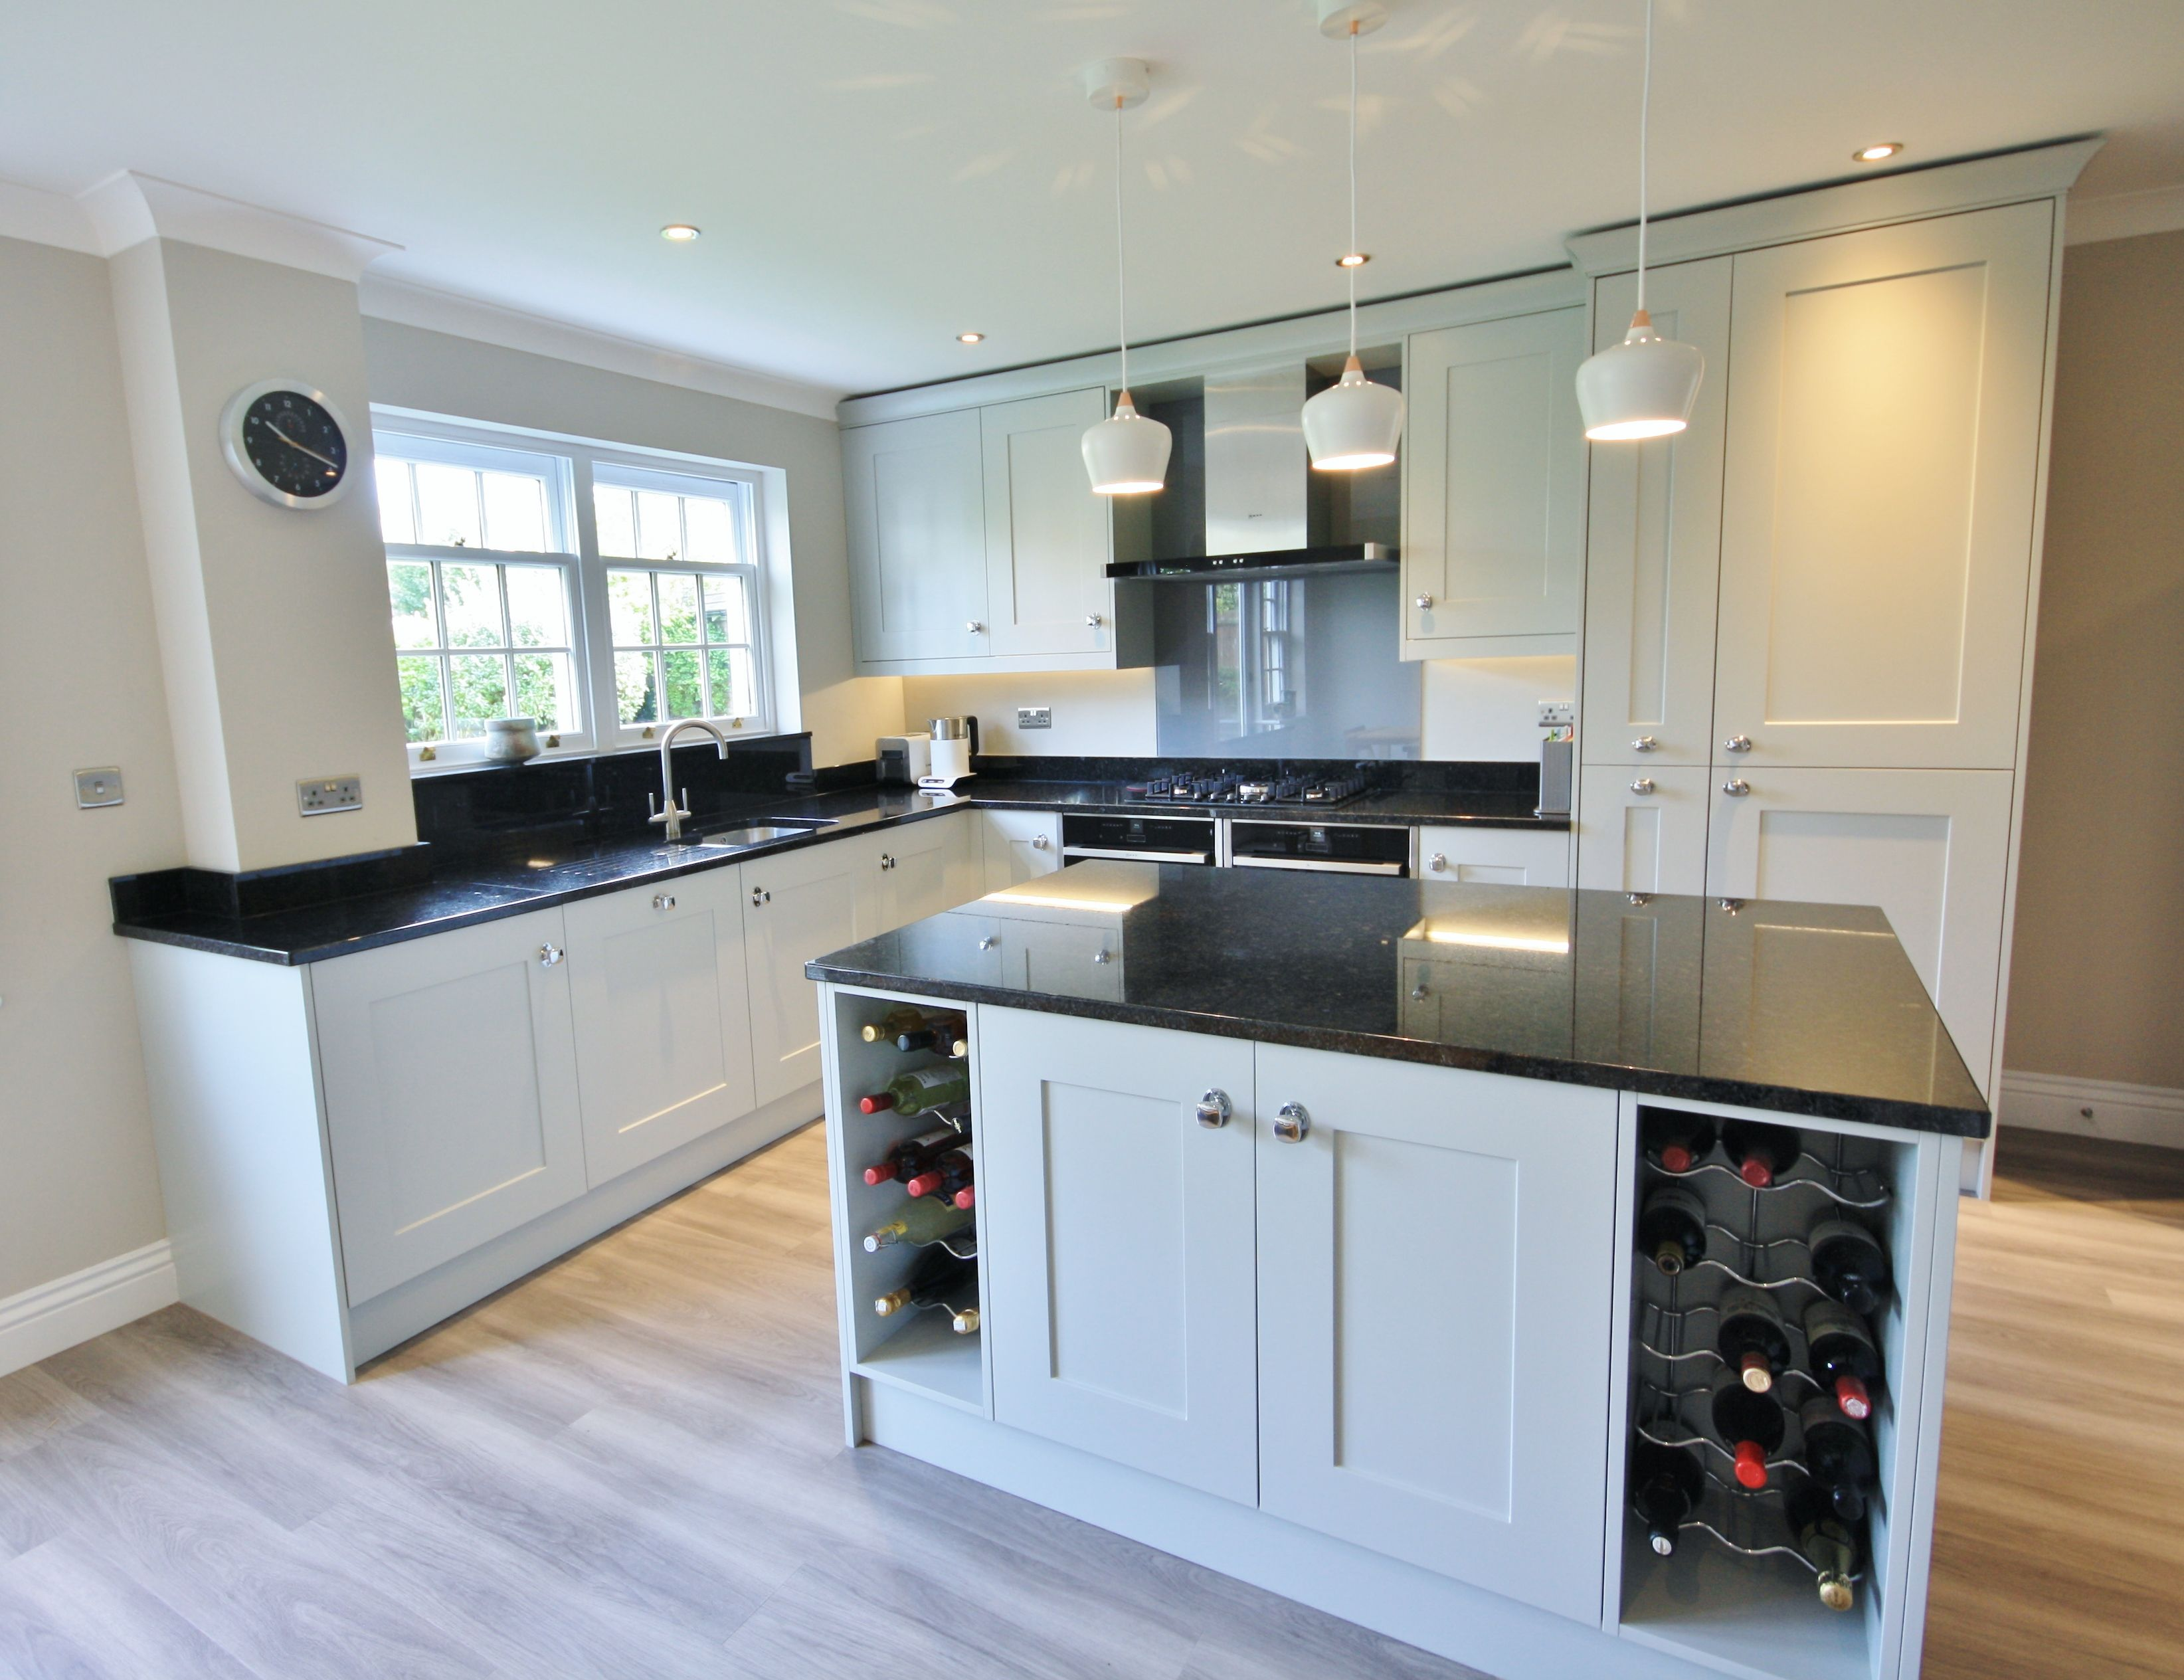 Great Kitchen Layout, There Is Even Enough Storage Room For 2 X Wine Racks.  Designed, Supplied And Installed By Kitchencraft Essex.